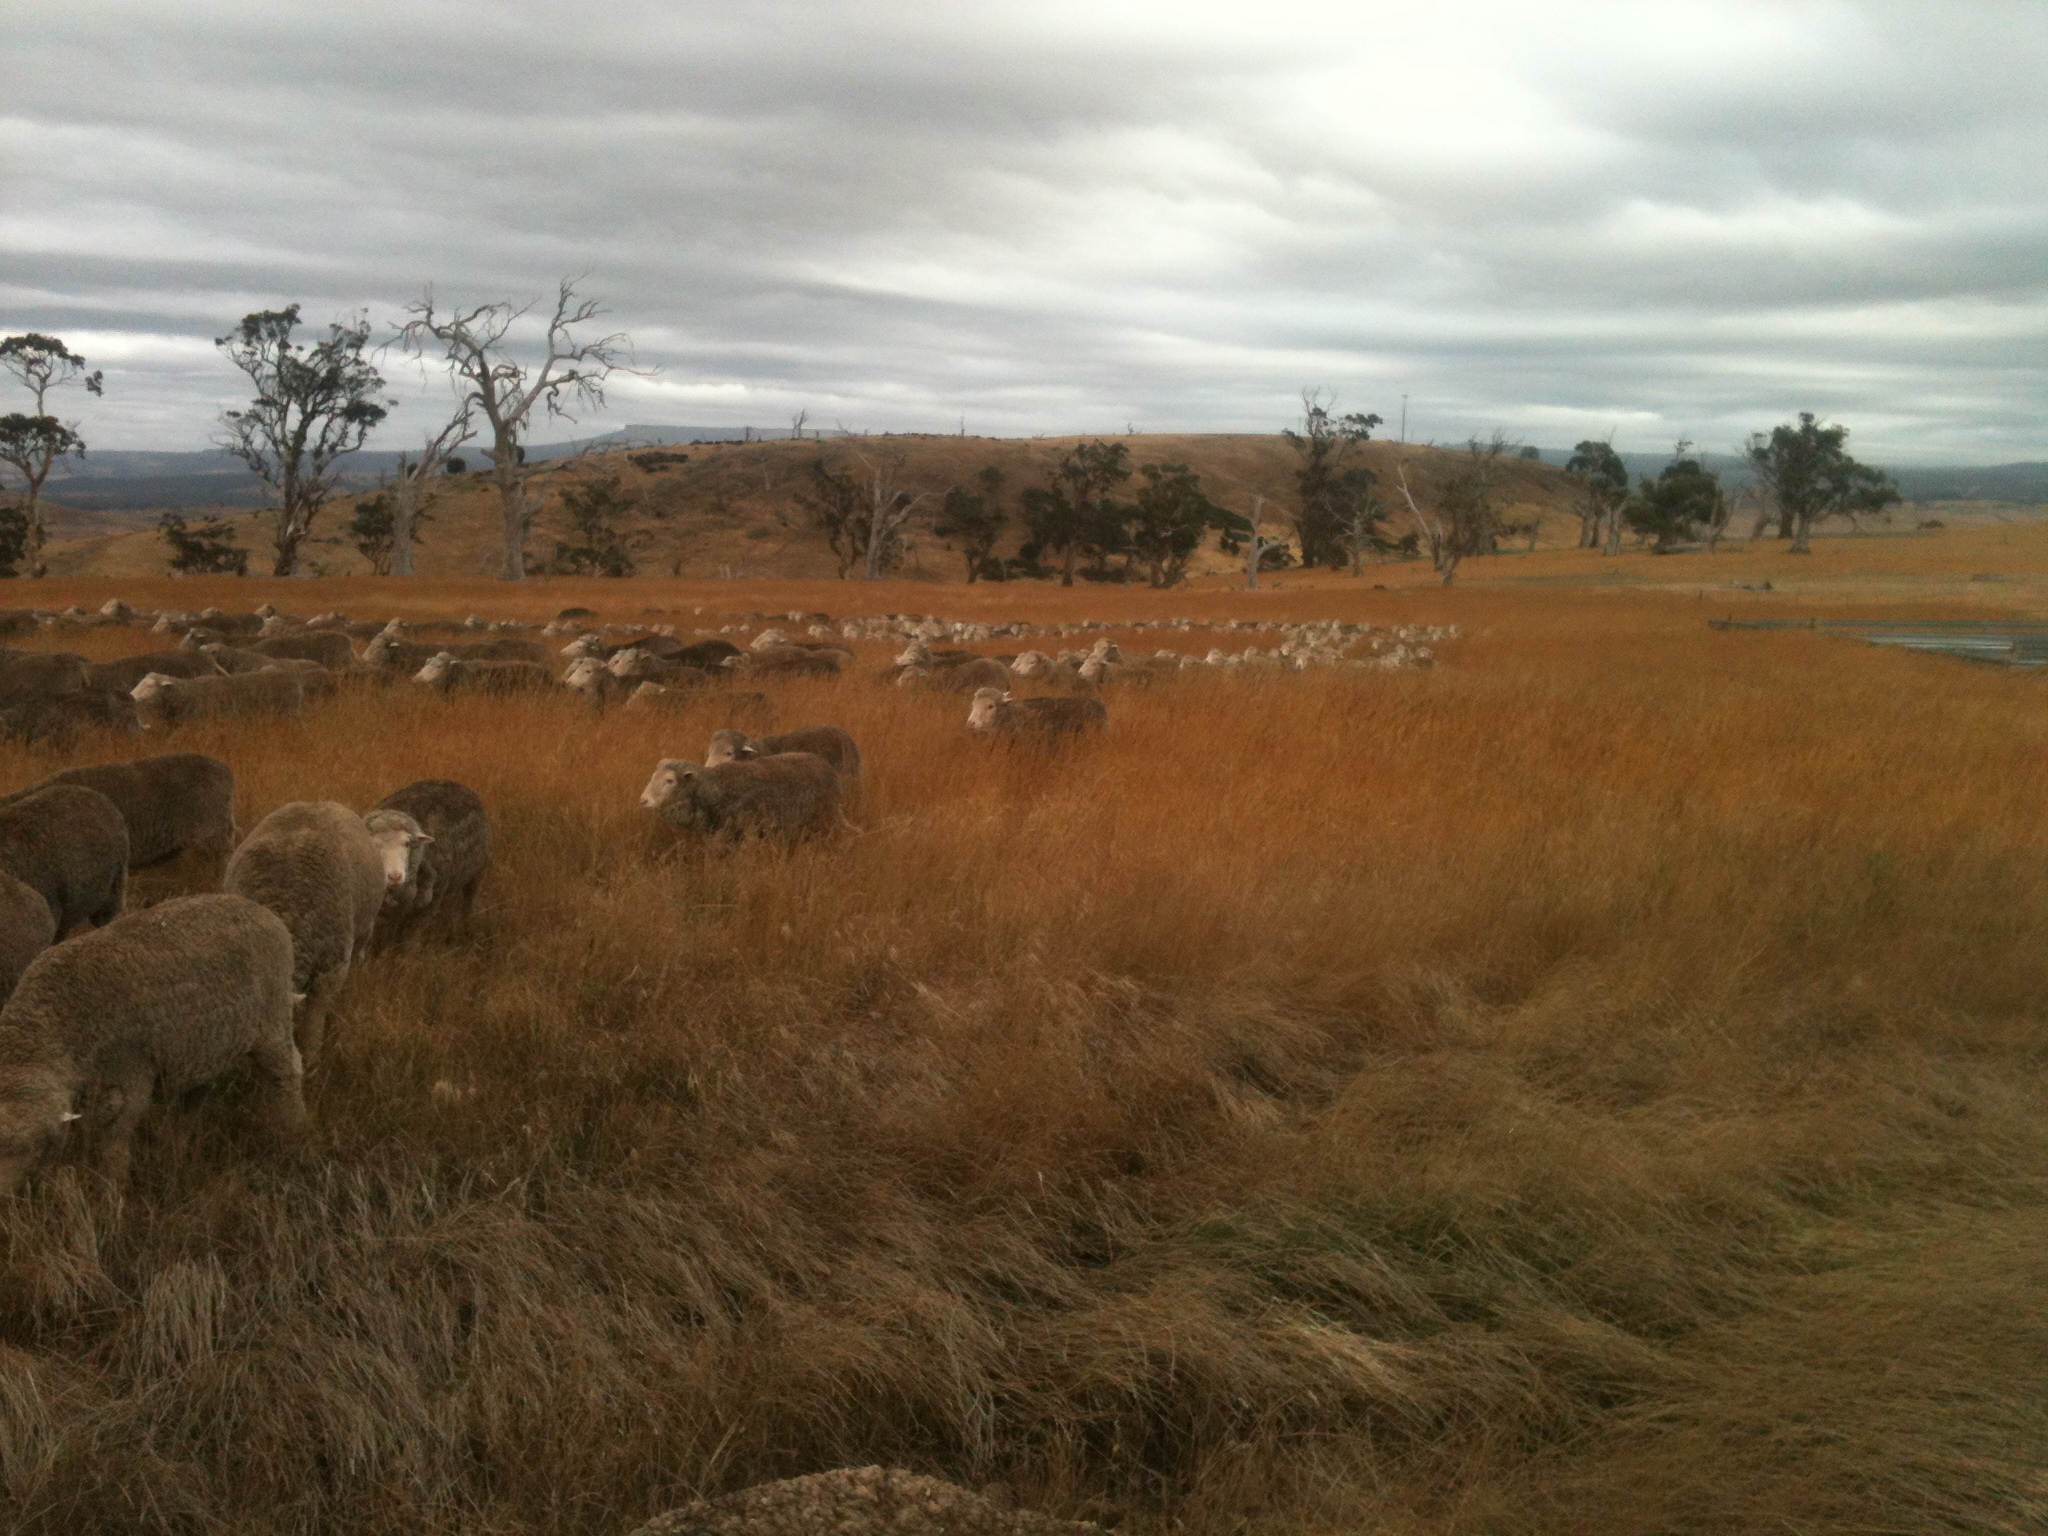 P1: Galloping into the lambing paddock--such excitement about this fresh forage!